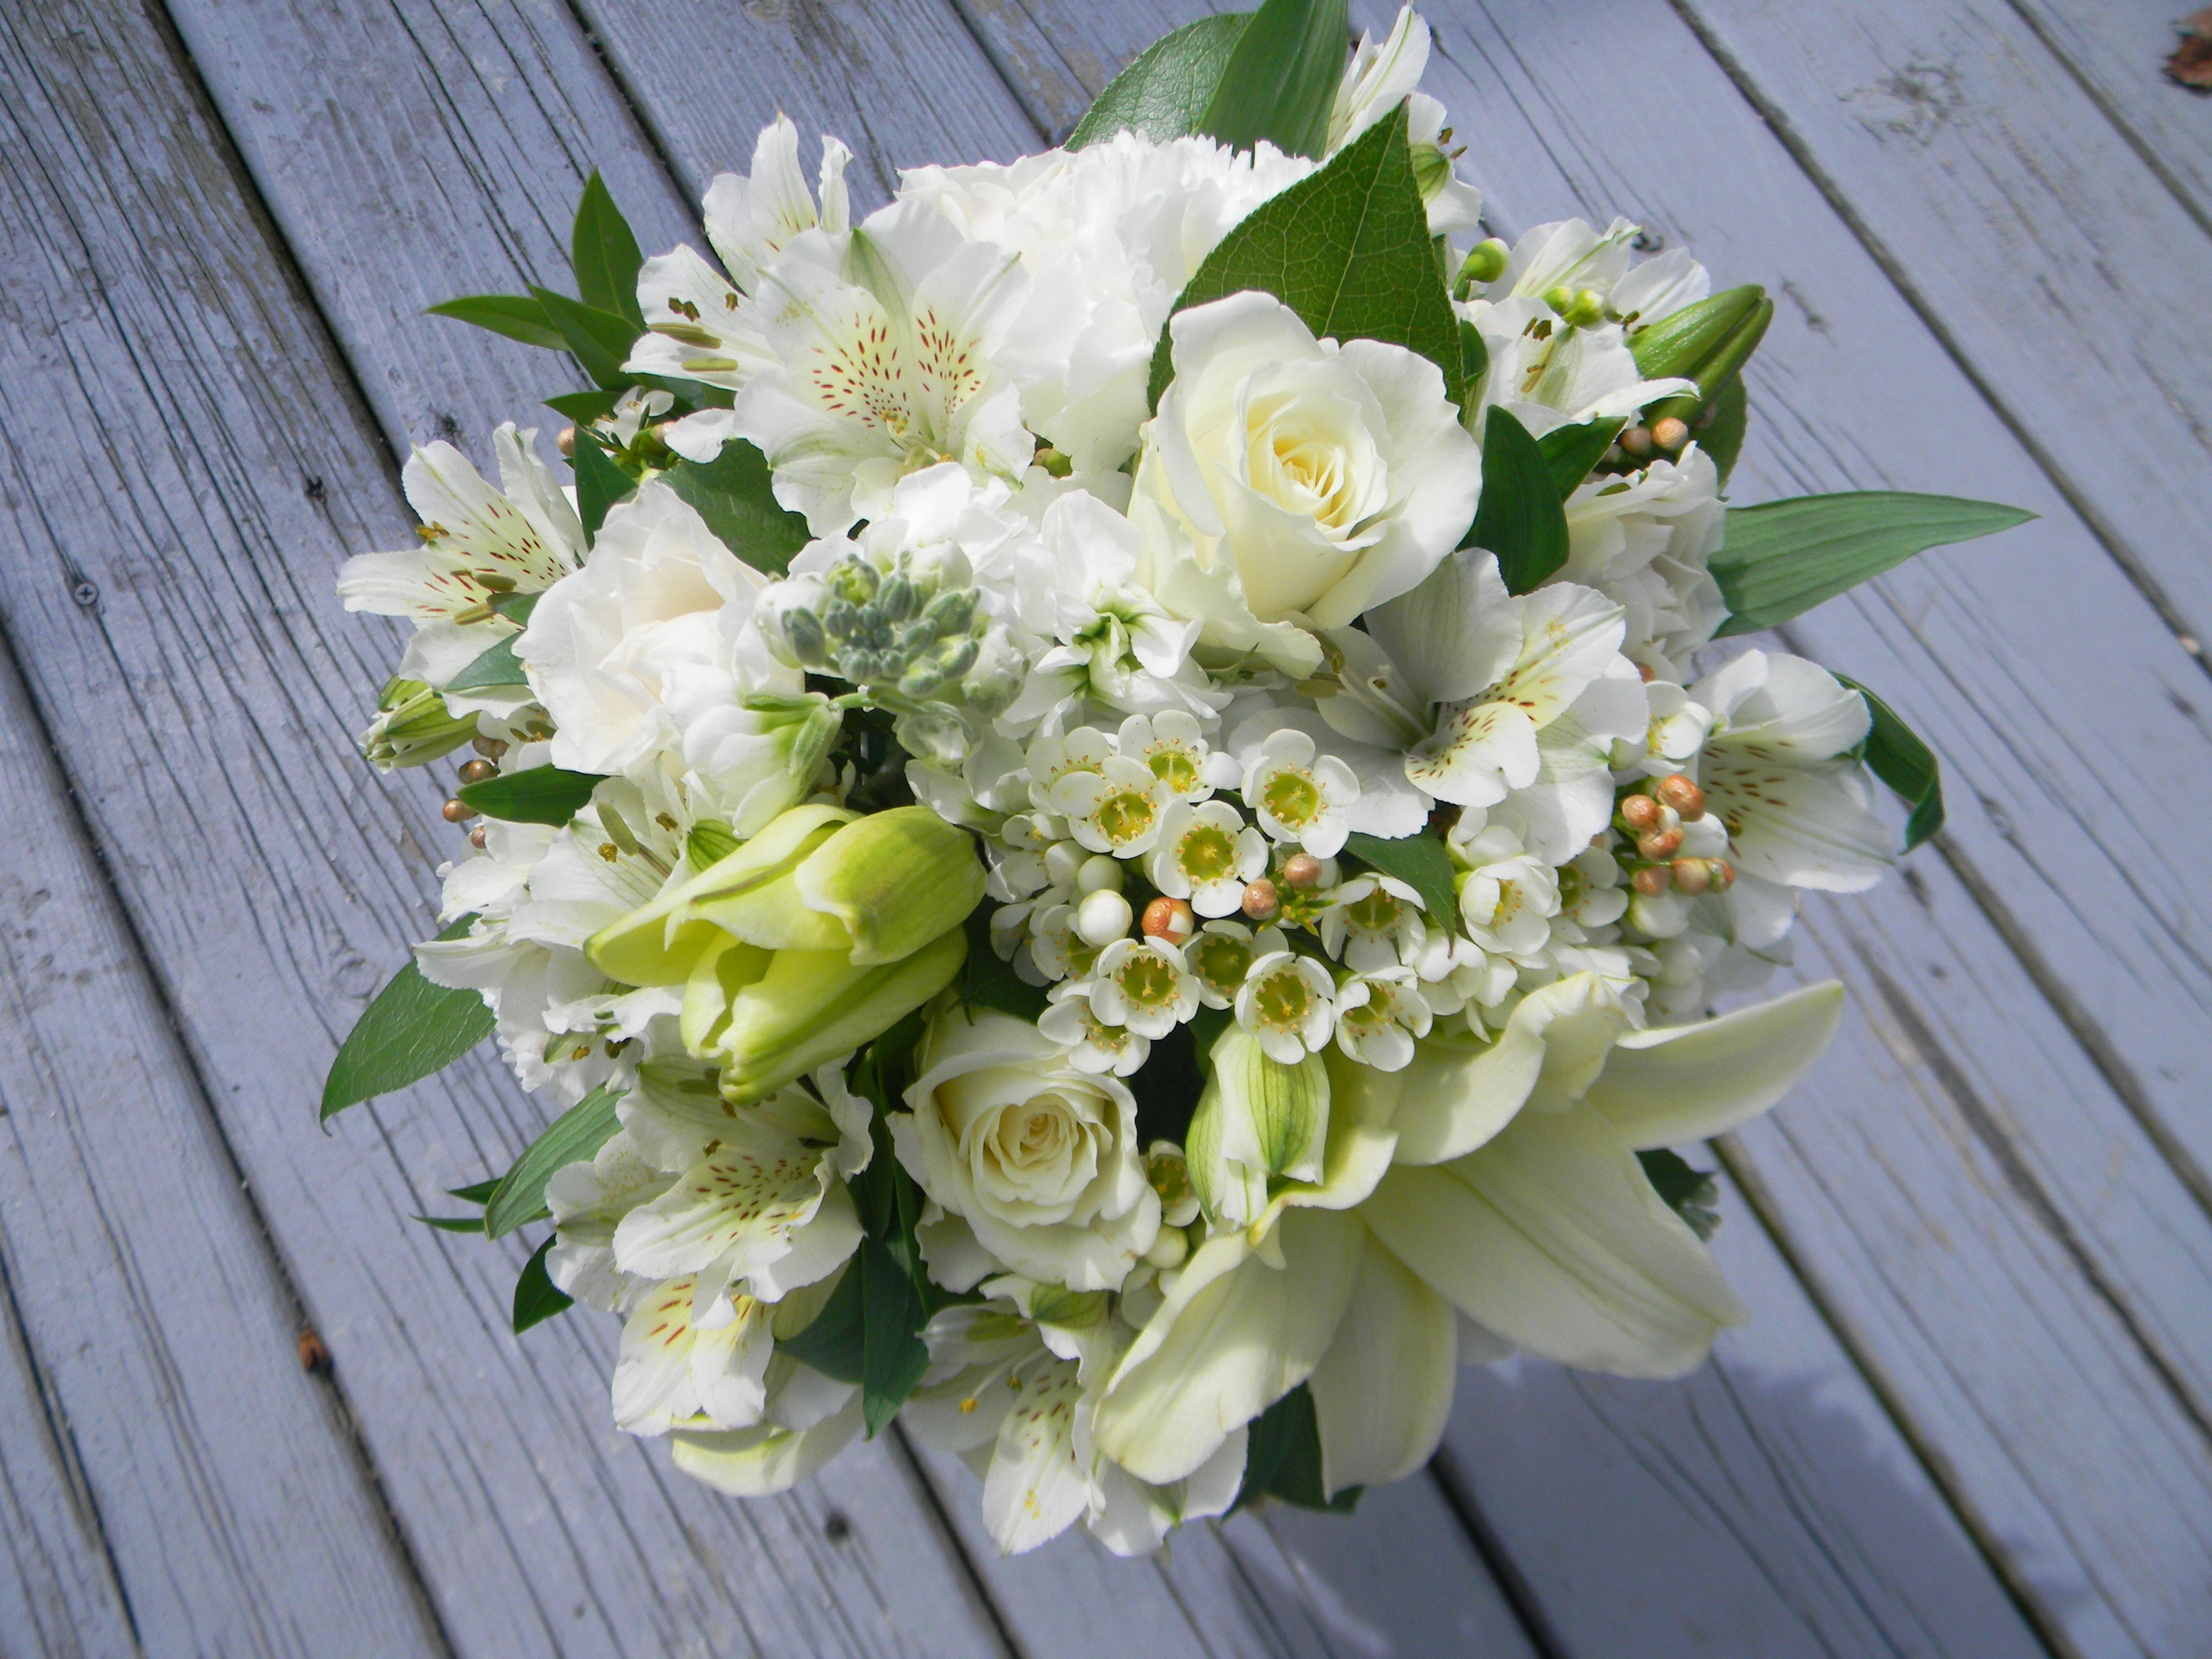 All White Bridal Bouquet With Lots Of Texture And Varying Size